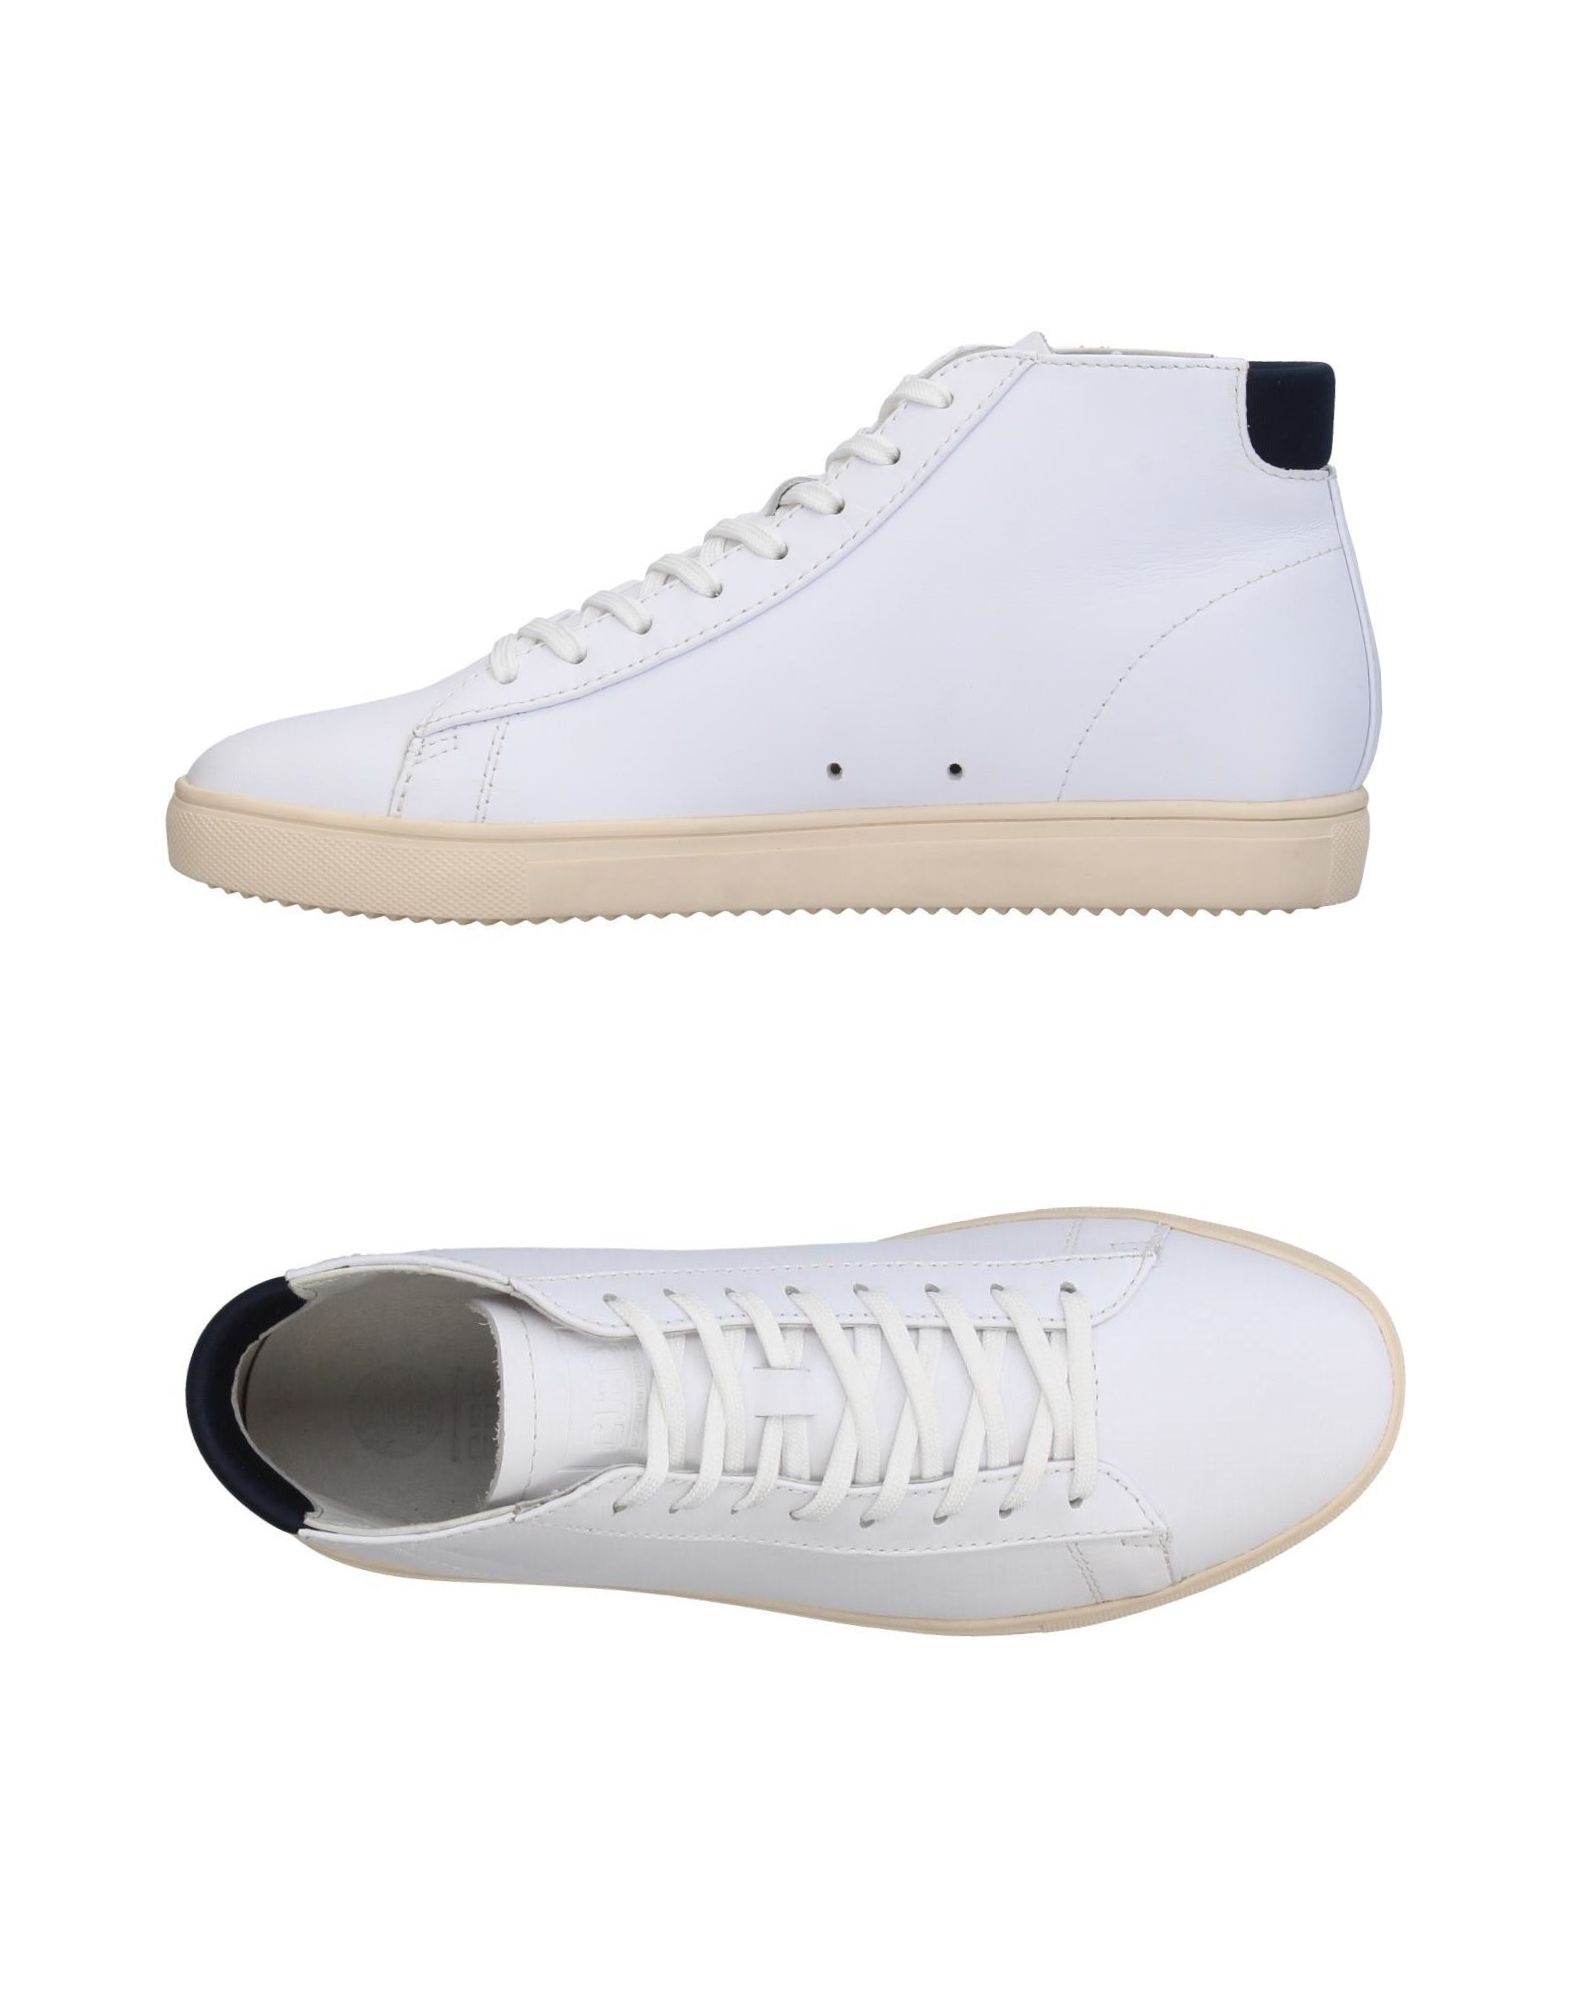 Clae Sneakers  - Men Clae Sneakers online on  Sneakers Canada - 11392522BI 640c7b